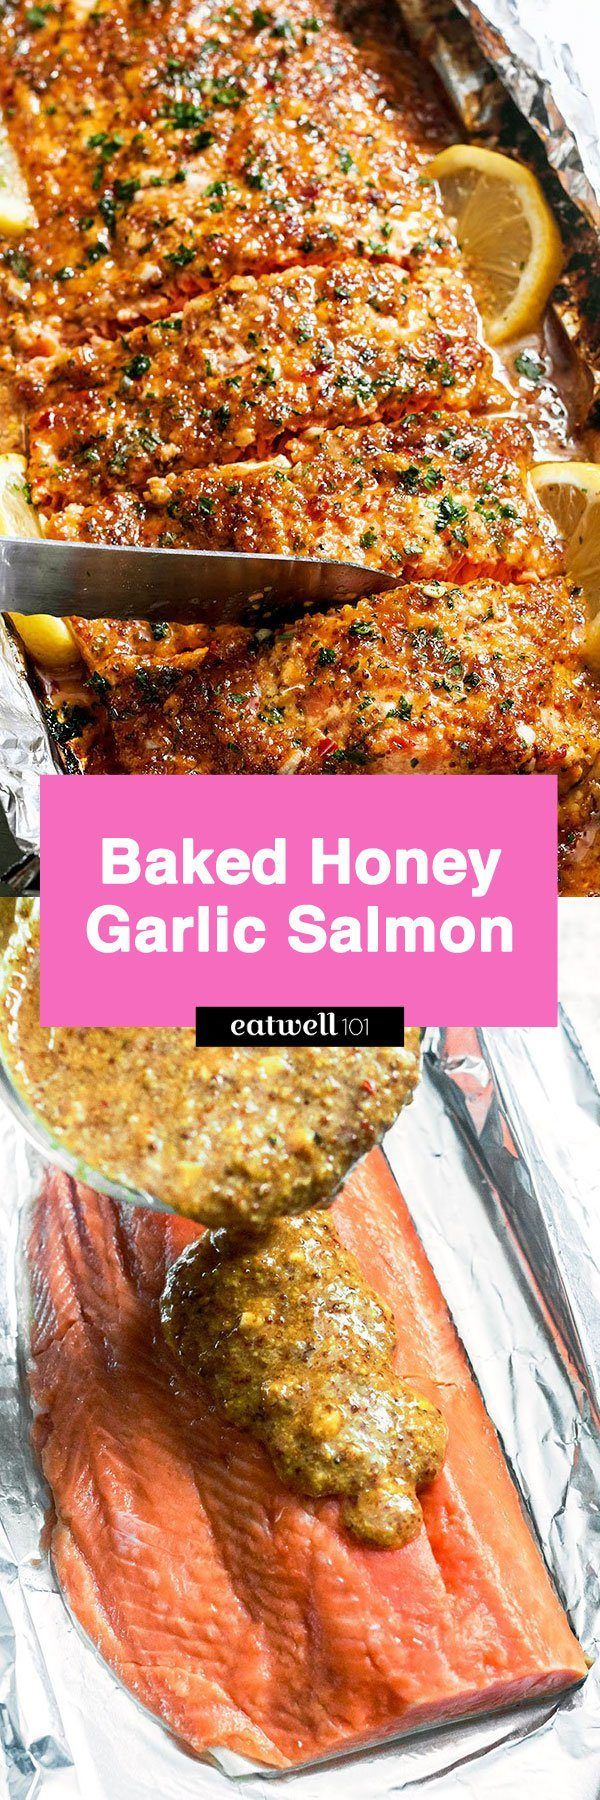 #Baked #Salmon in #Foil #recipe – #eatwell101 #recipe Easiest tin foil #dinner ever! Quick, easy with zero clean-up! - #recipe by #eatwell101